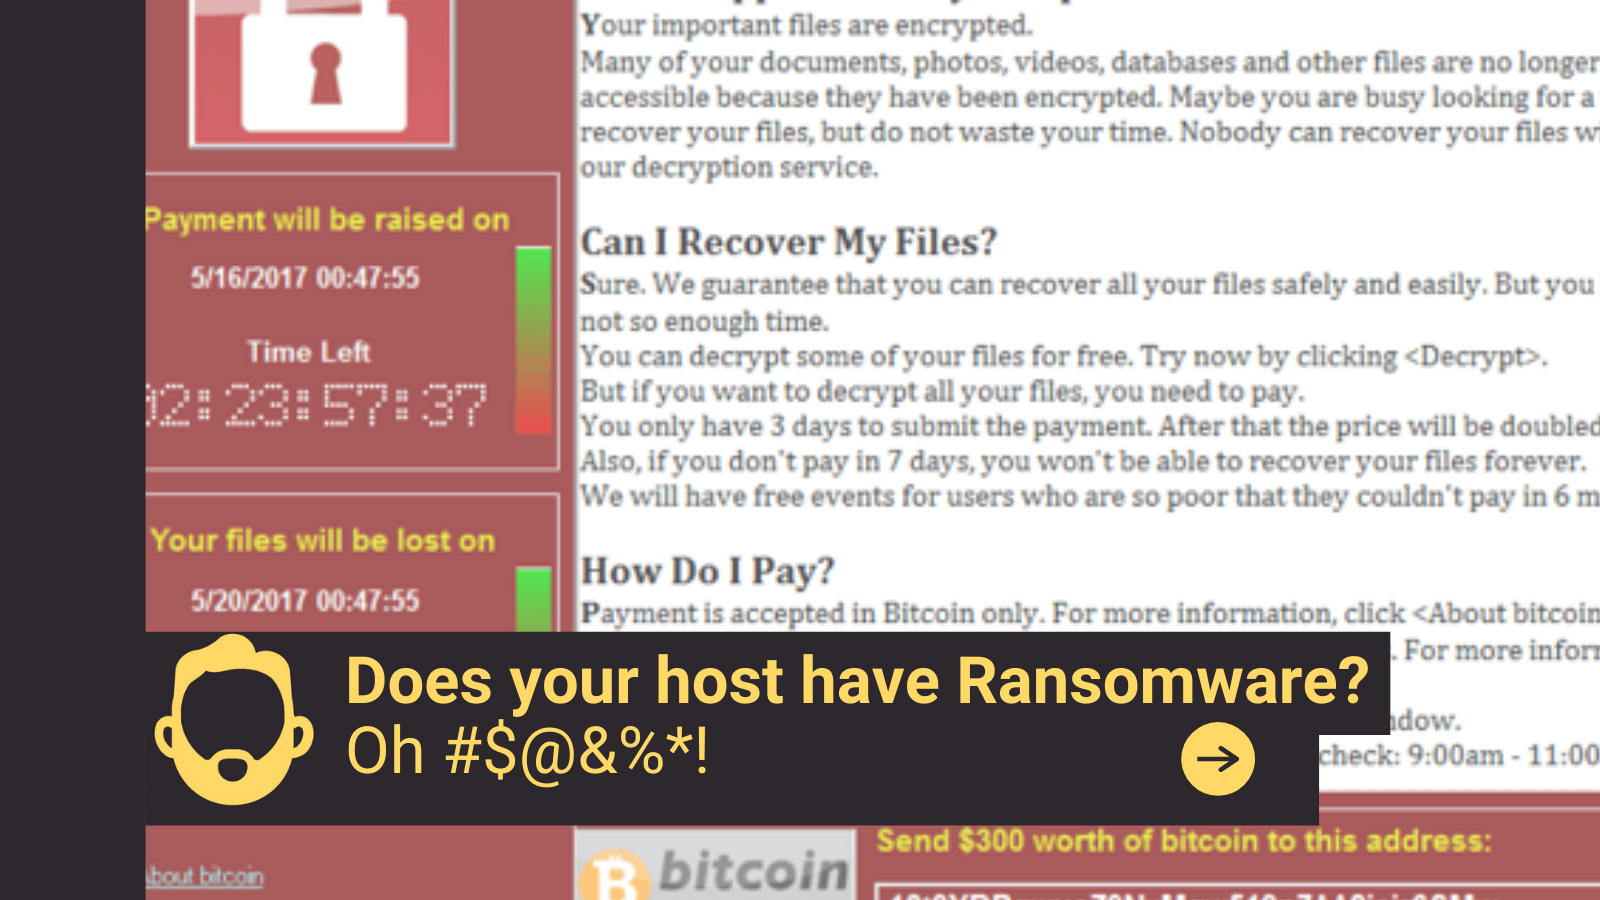 Does your host have Ransomware?